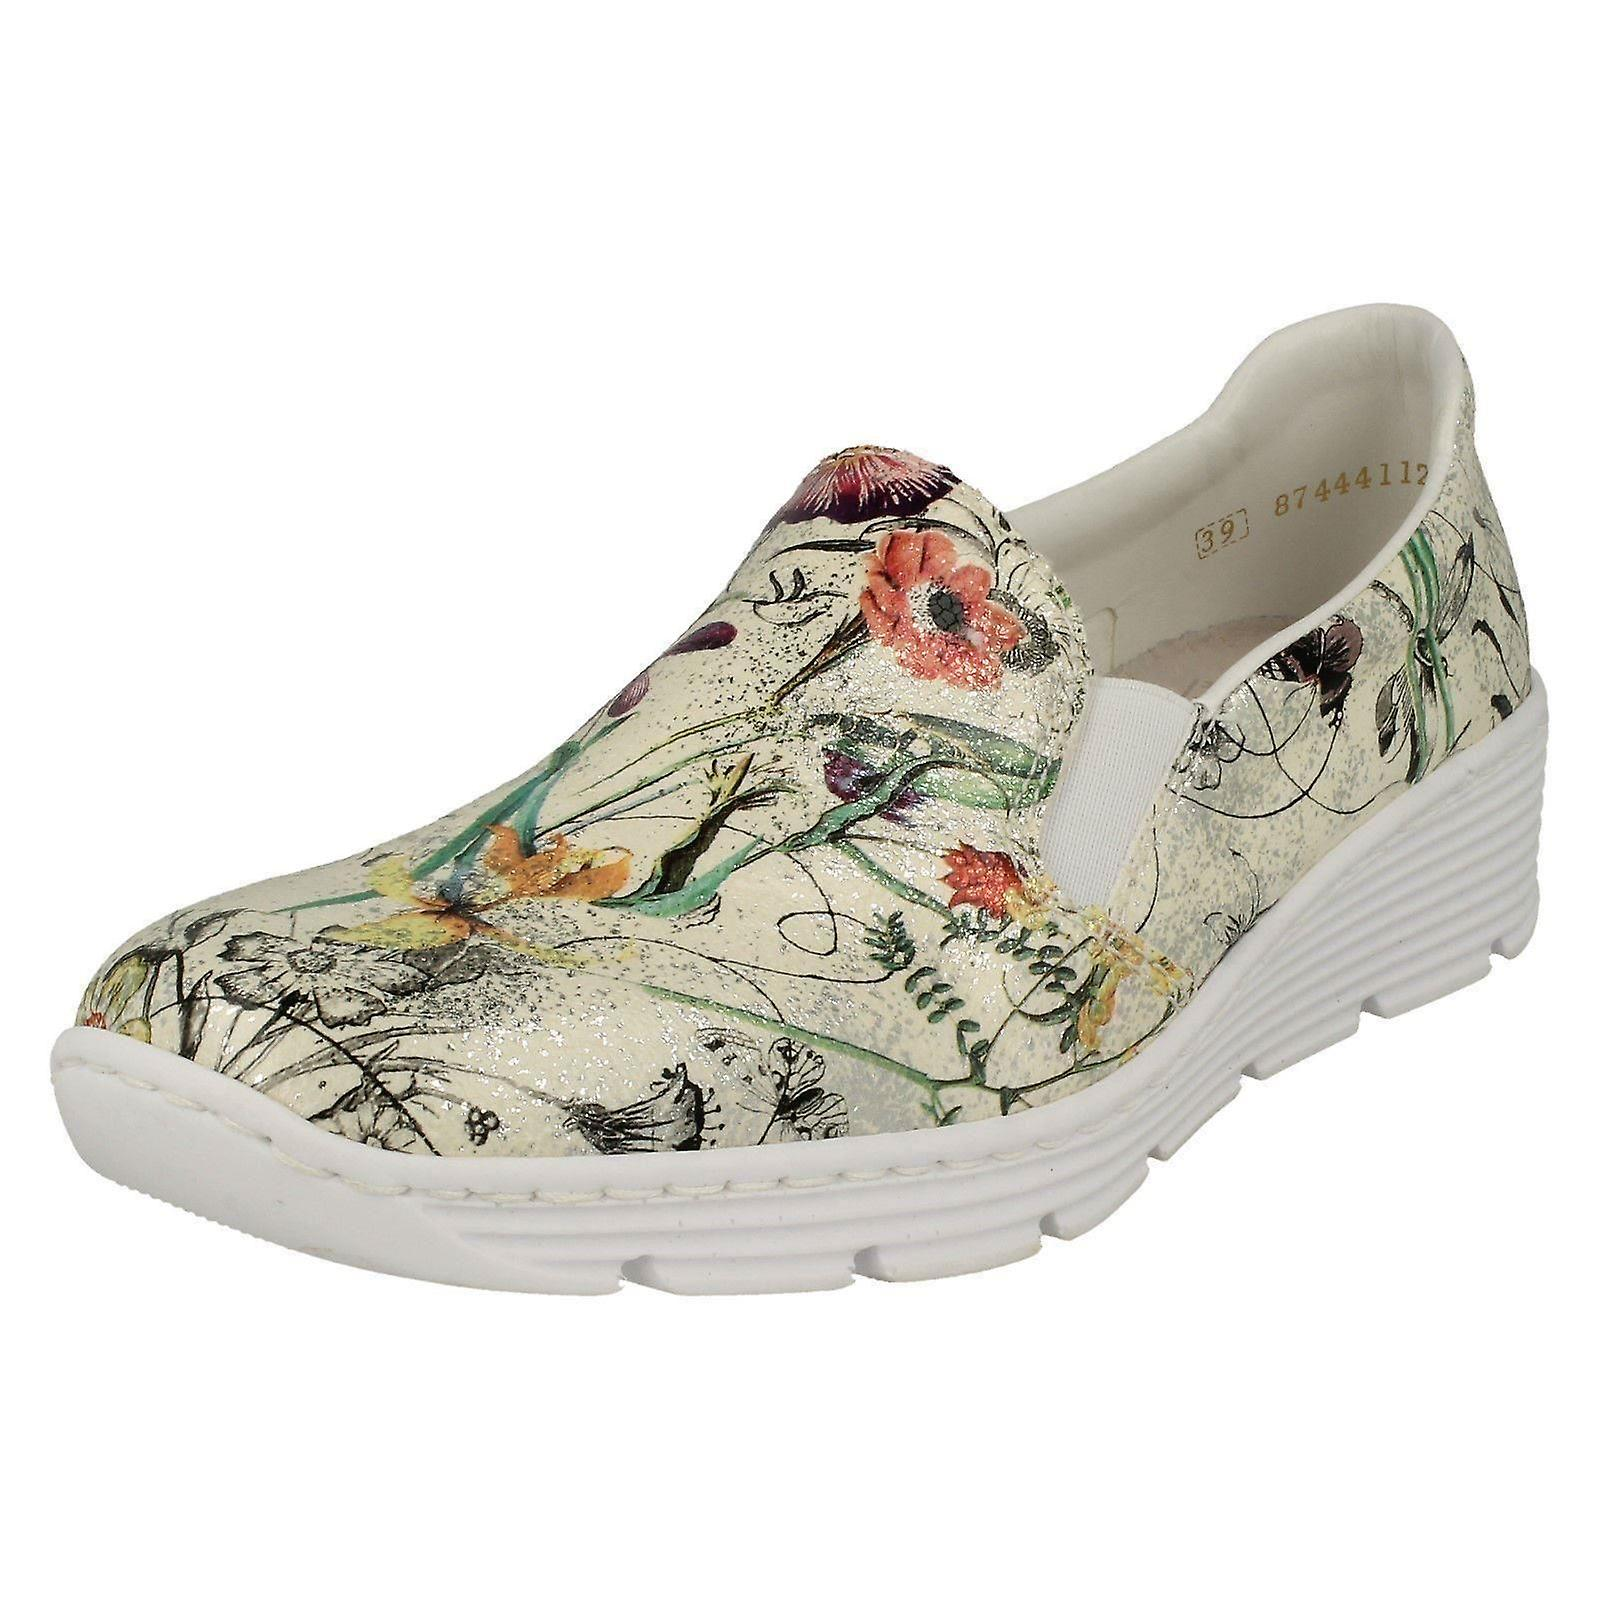 Ladies Rieker Casual Flat Slip On chaussures 58766